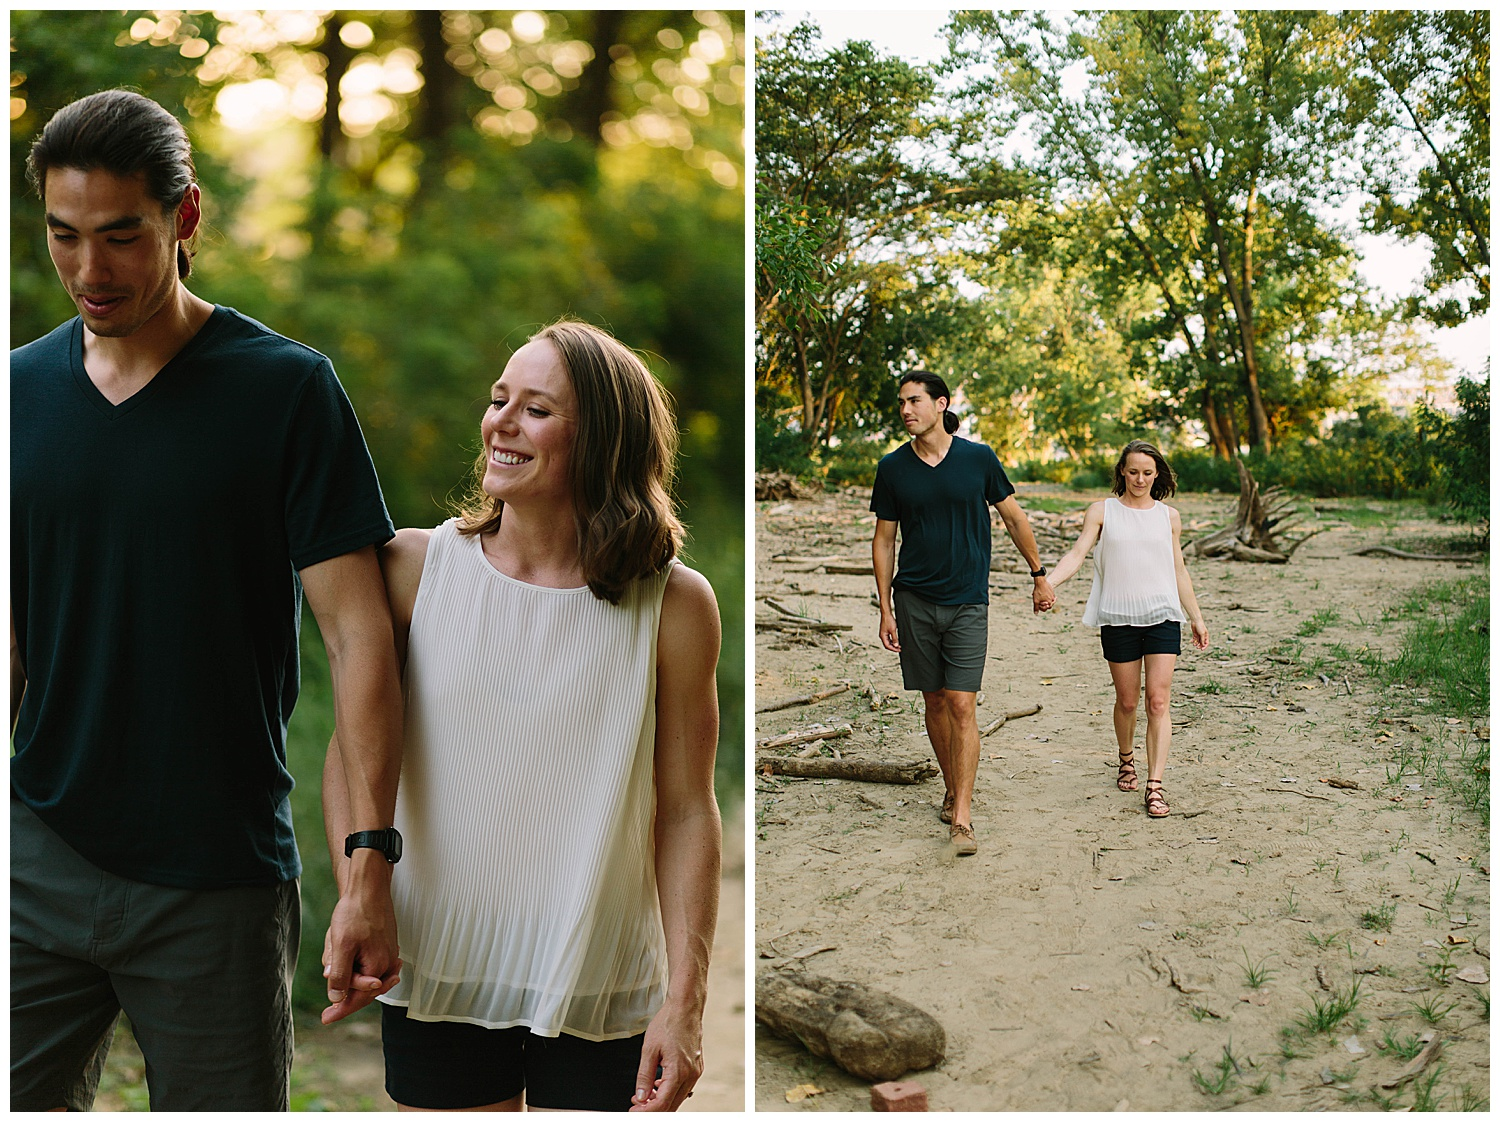 trent.and.kendra.photography.falls.of.the.ohio.engagement.session-19.jpg